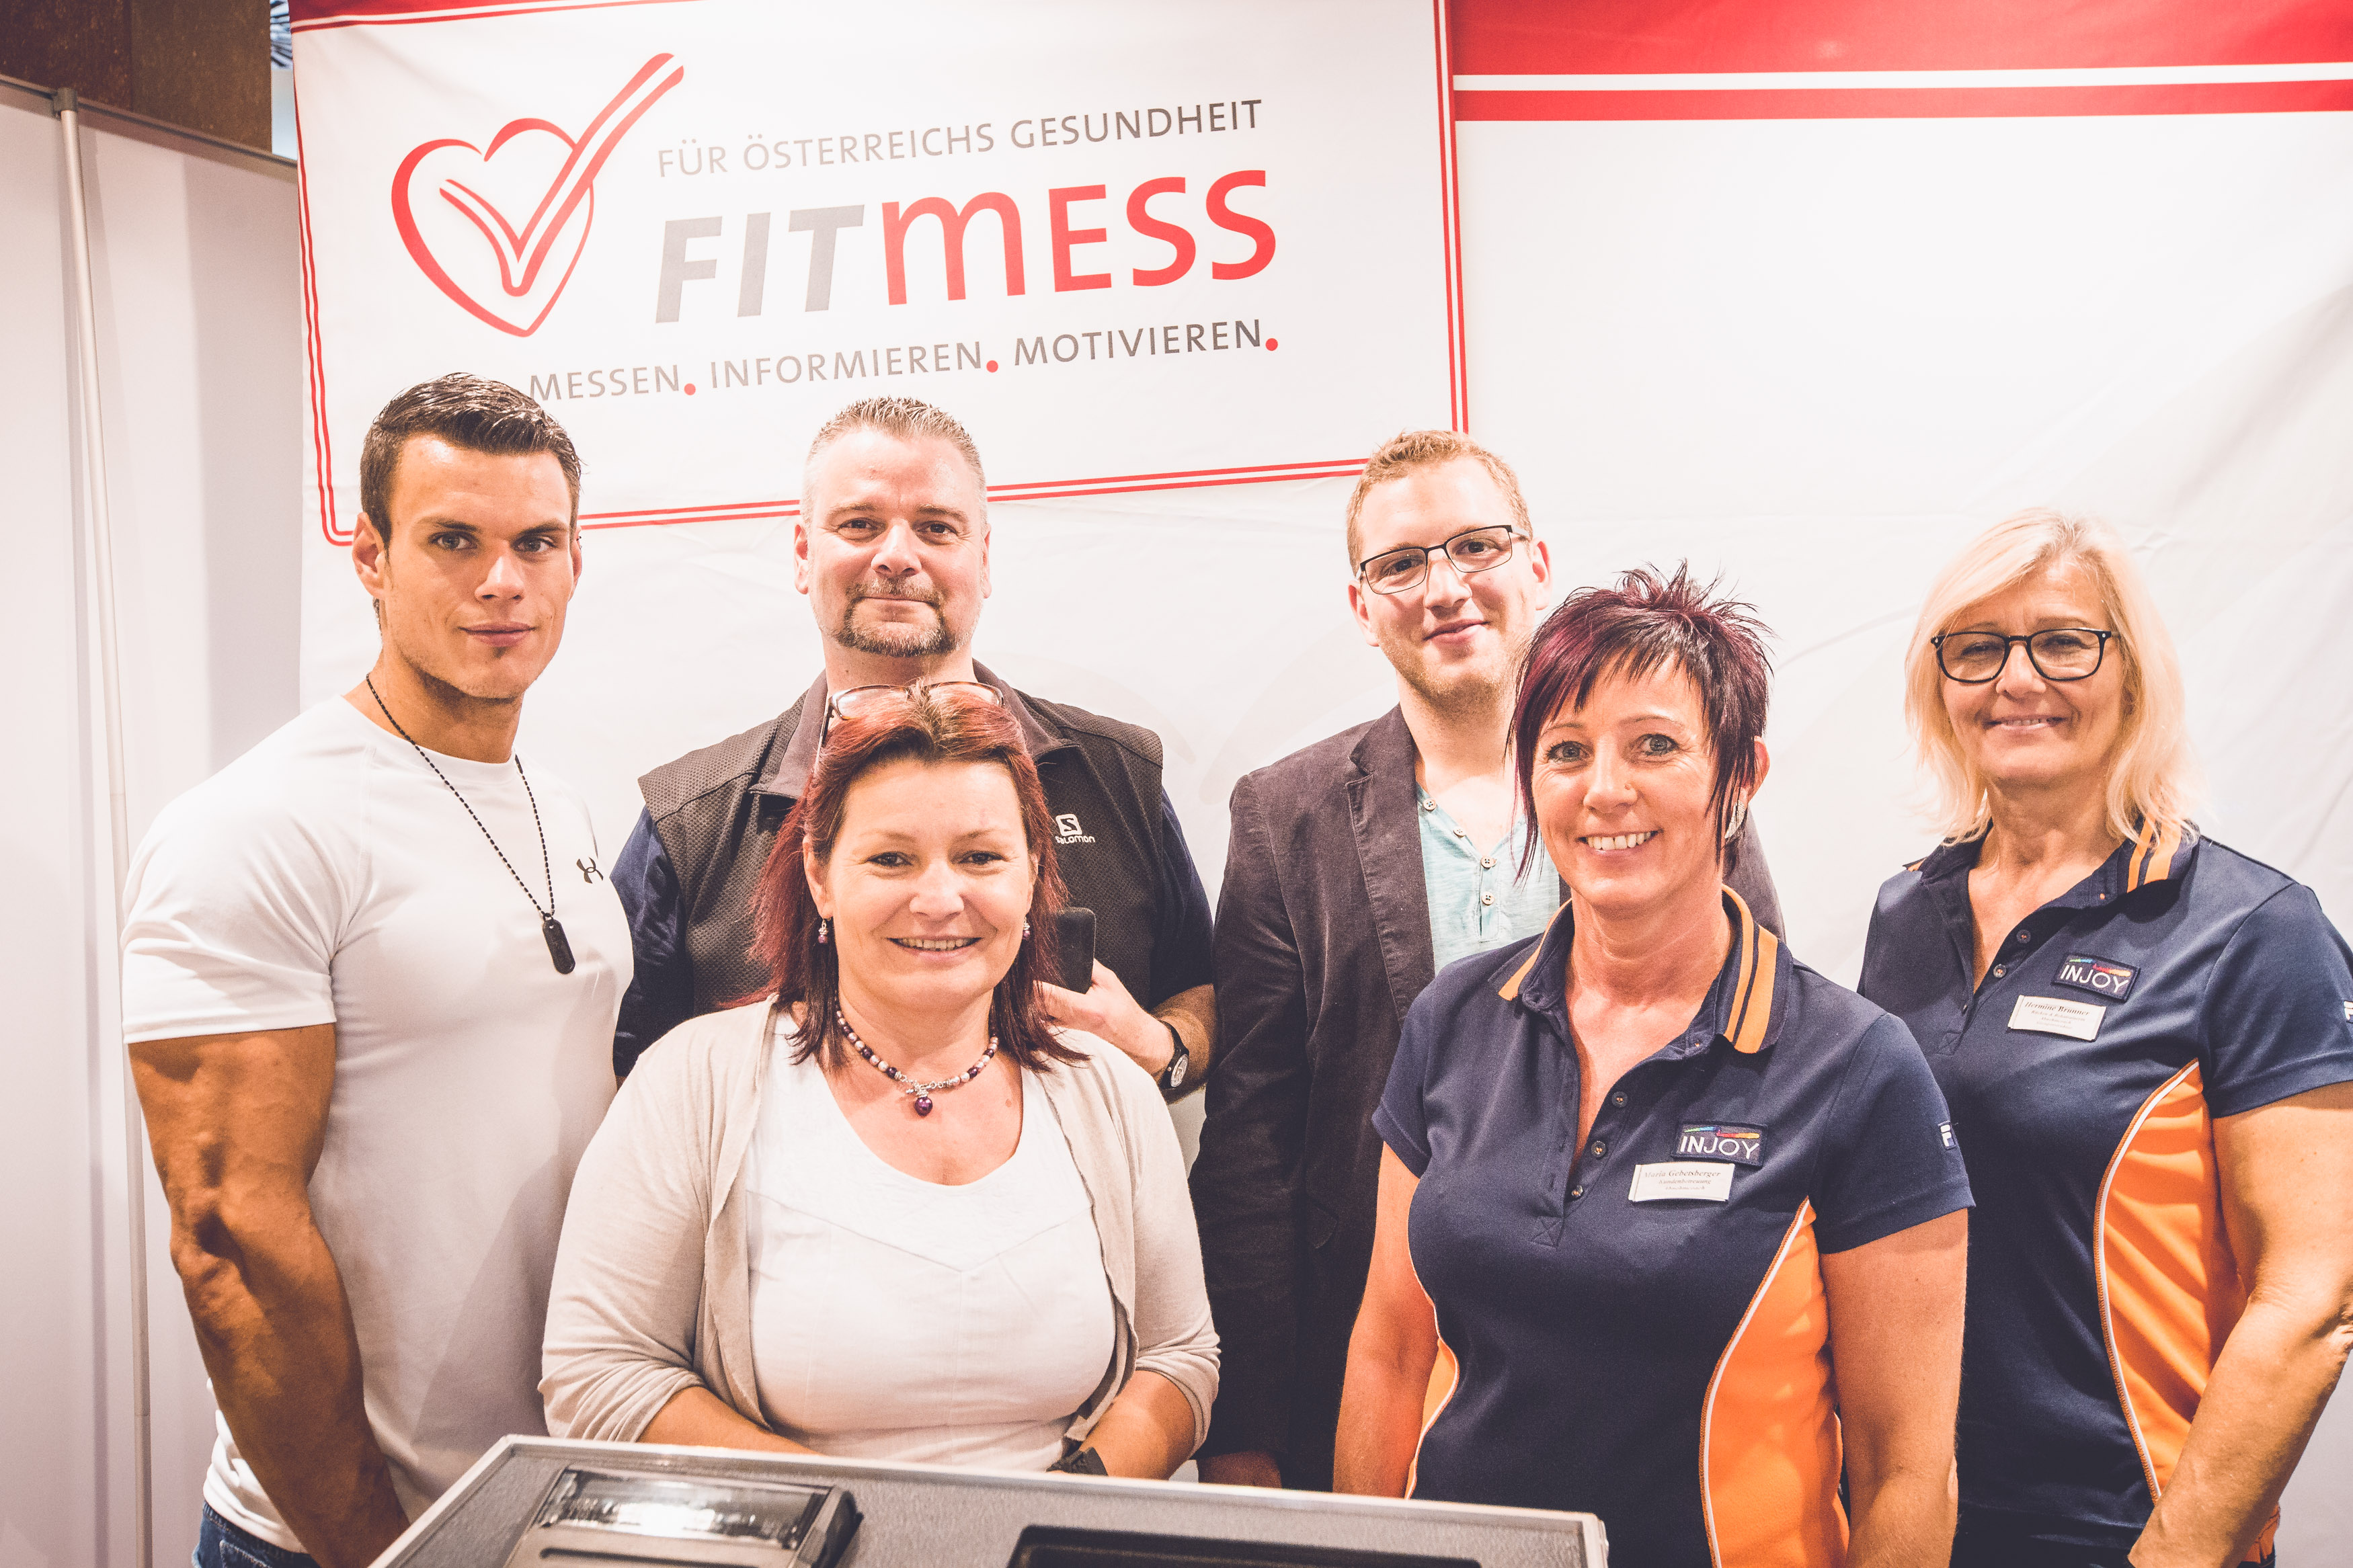 Die FITmess in City Center Amstetten